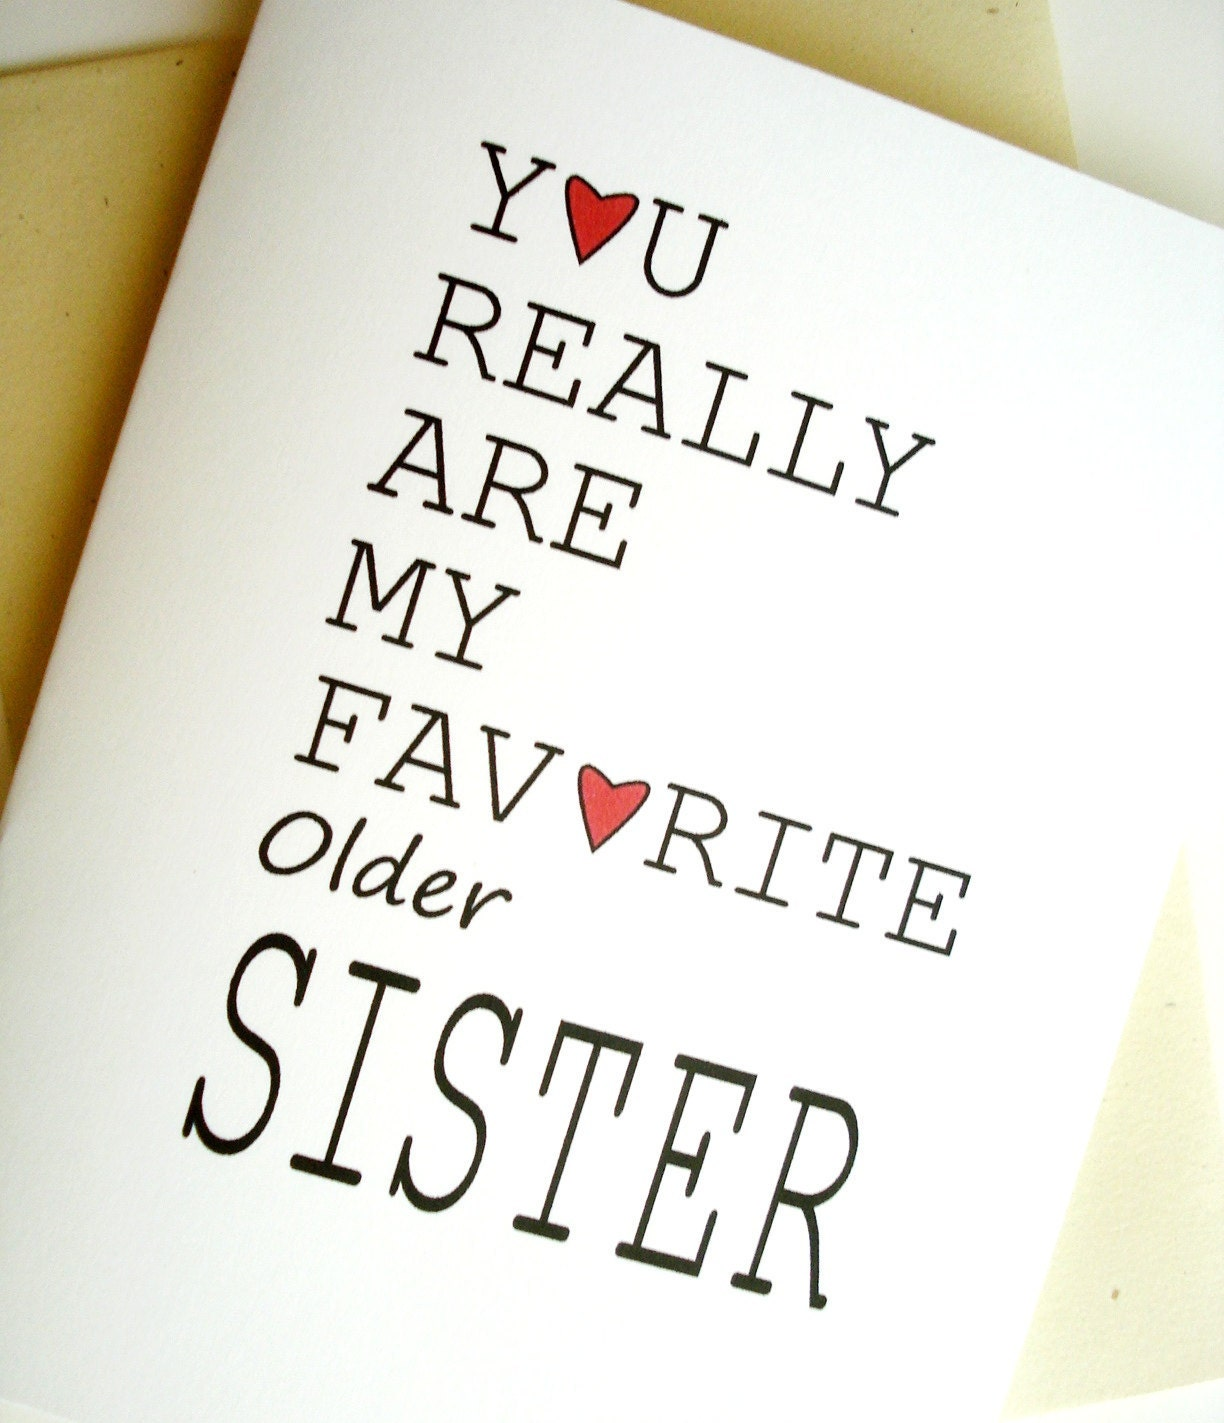 older sister birthday quotes - photo #12